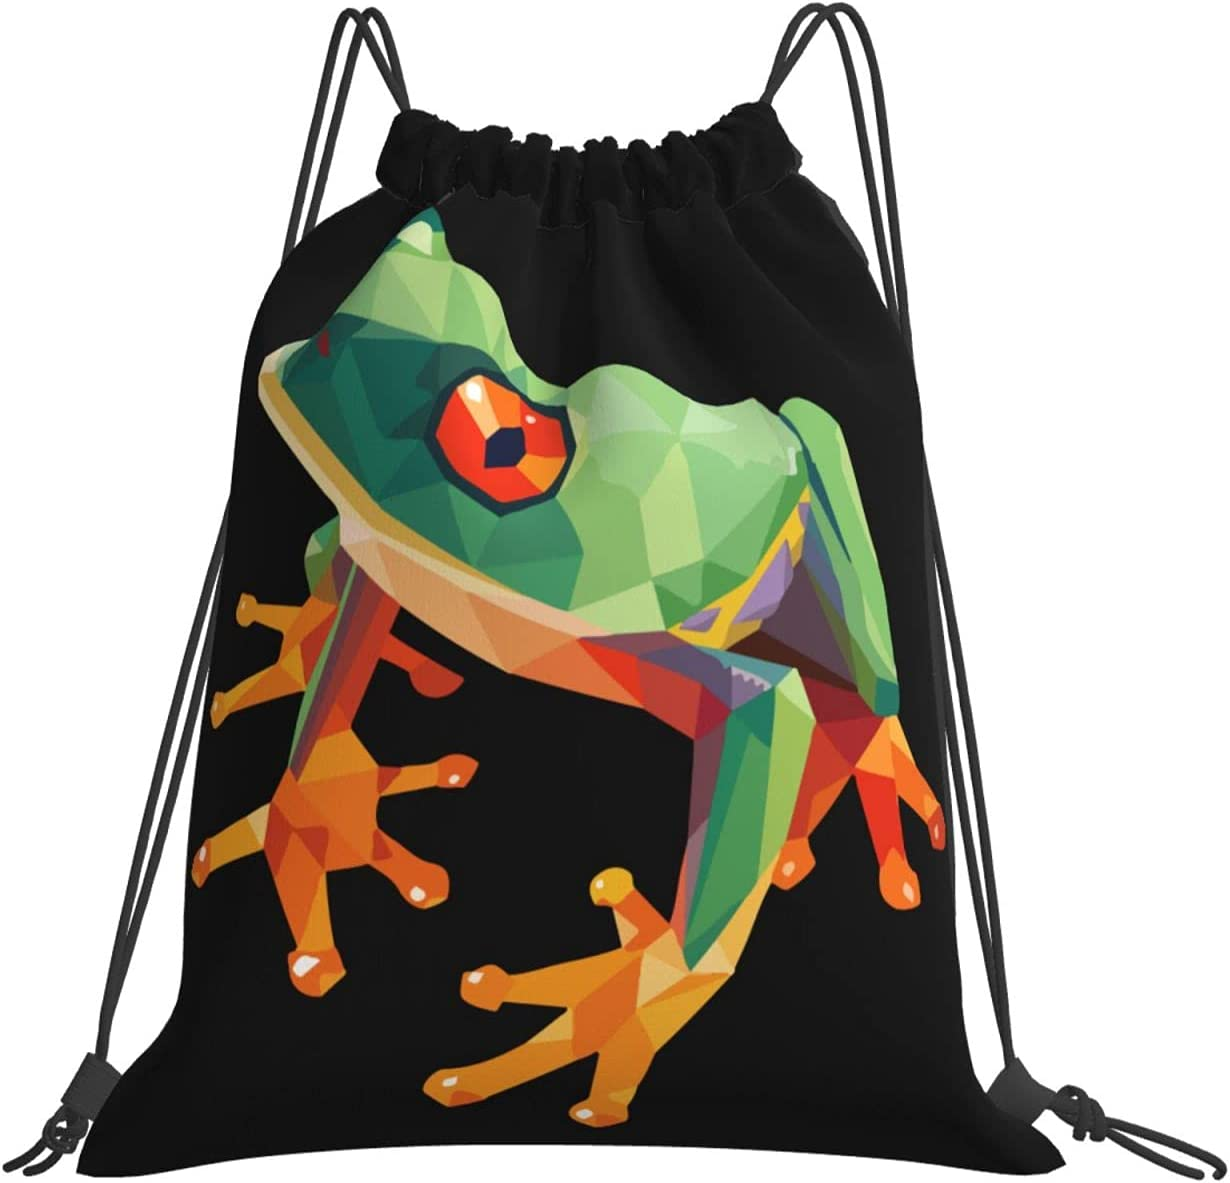 Geometric Tree Frog Drawstring Backpack Multi Purpose La 67% OFF of fixed price Bag Special price for a limited time Gym